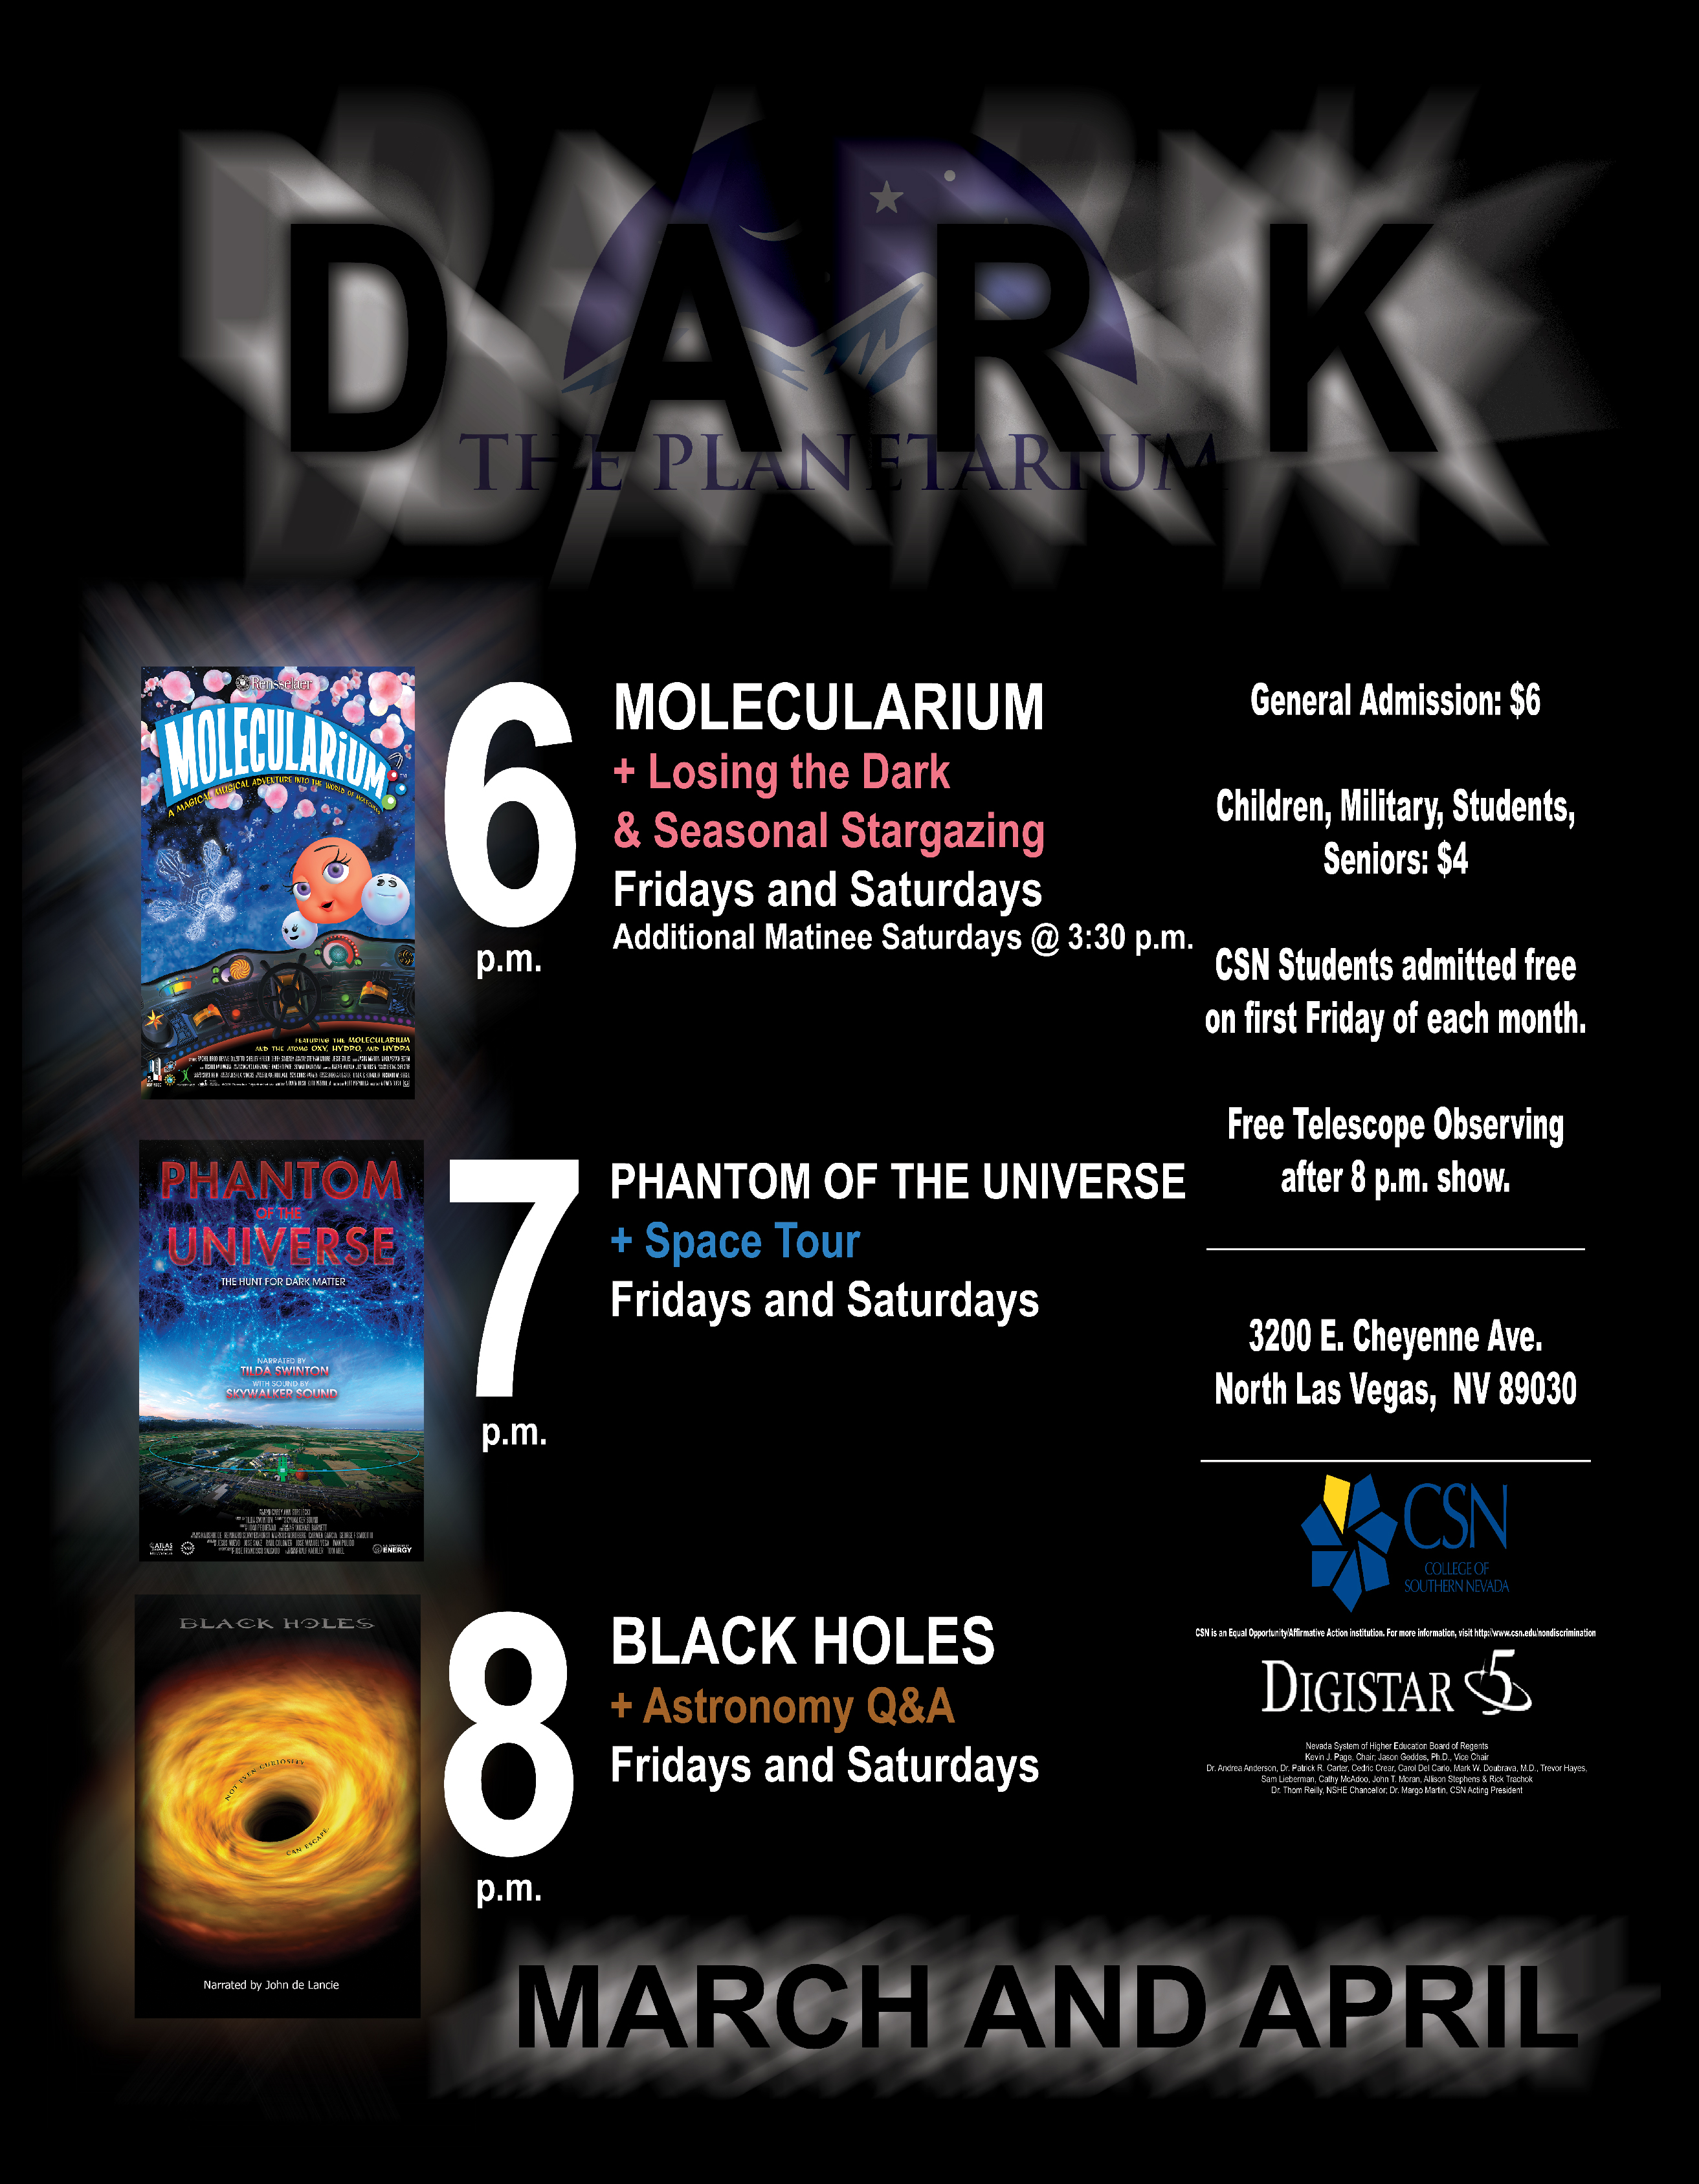 March through April Planetarium Schedule Flyer